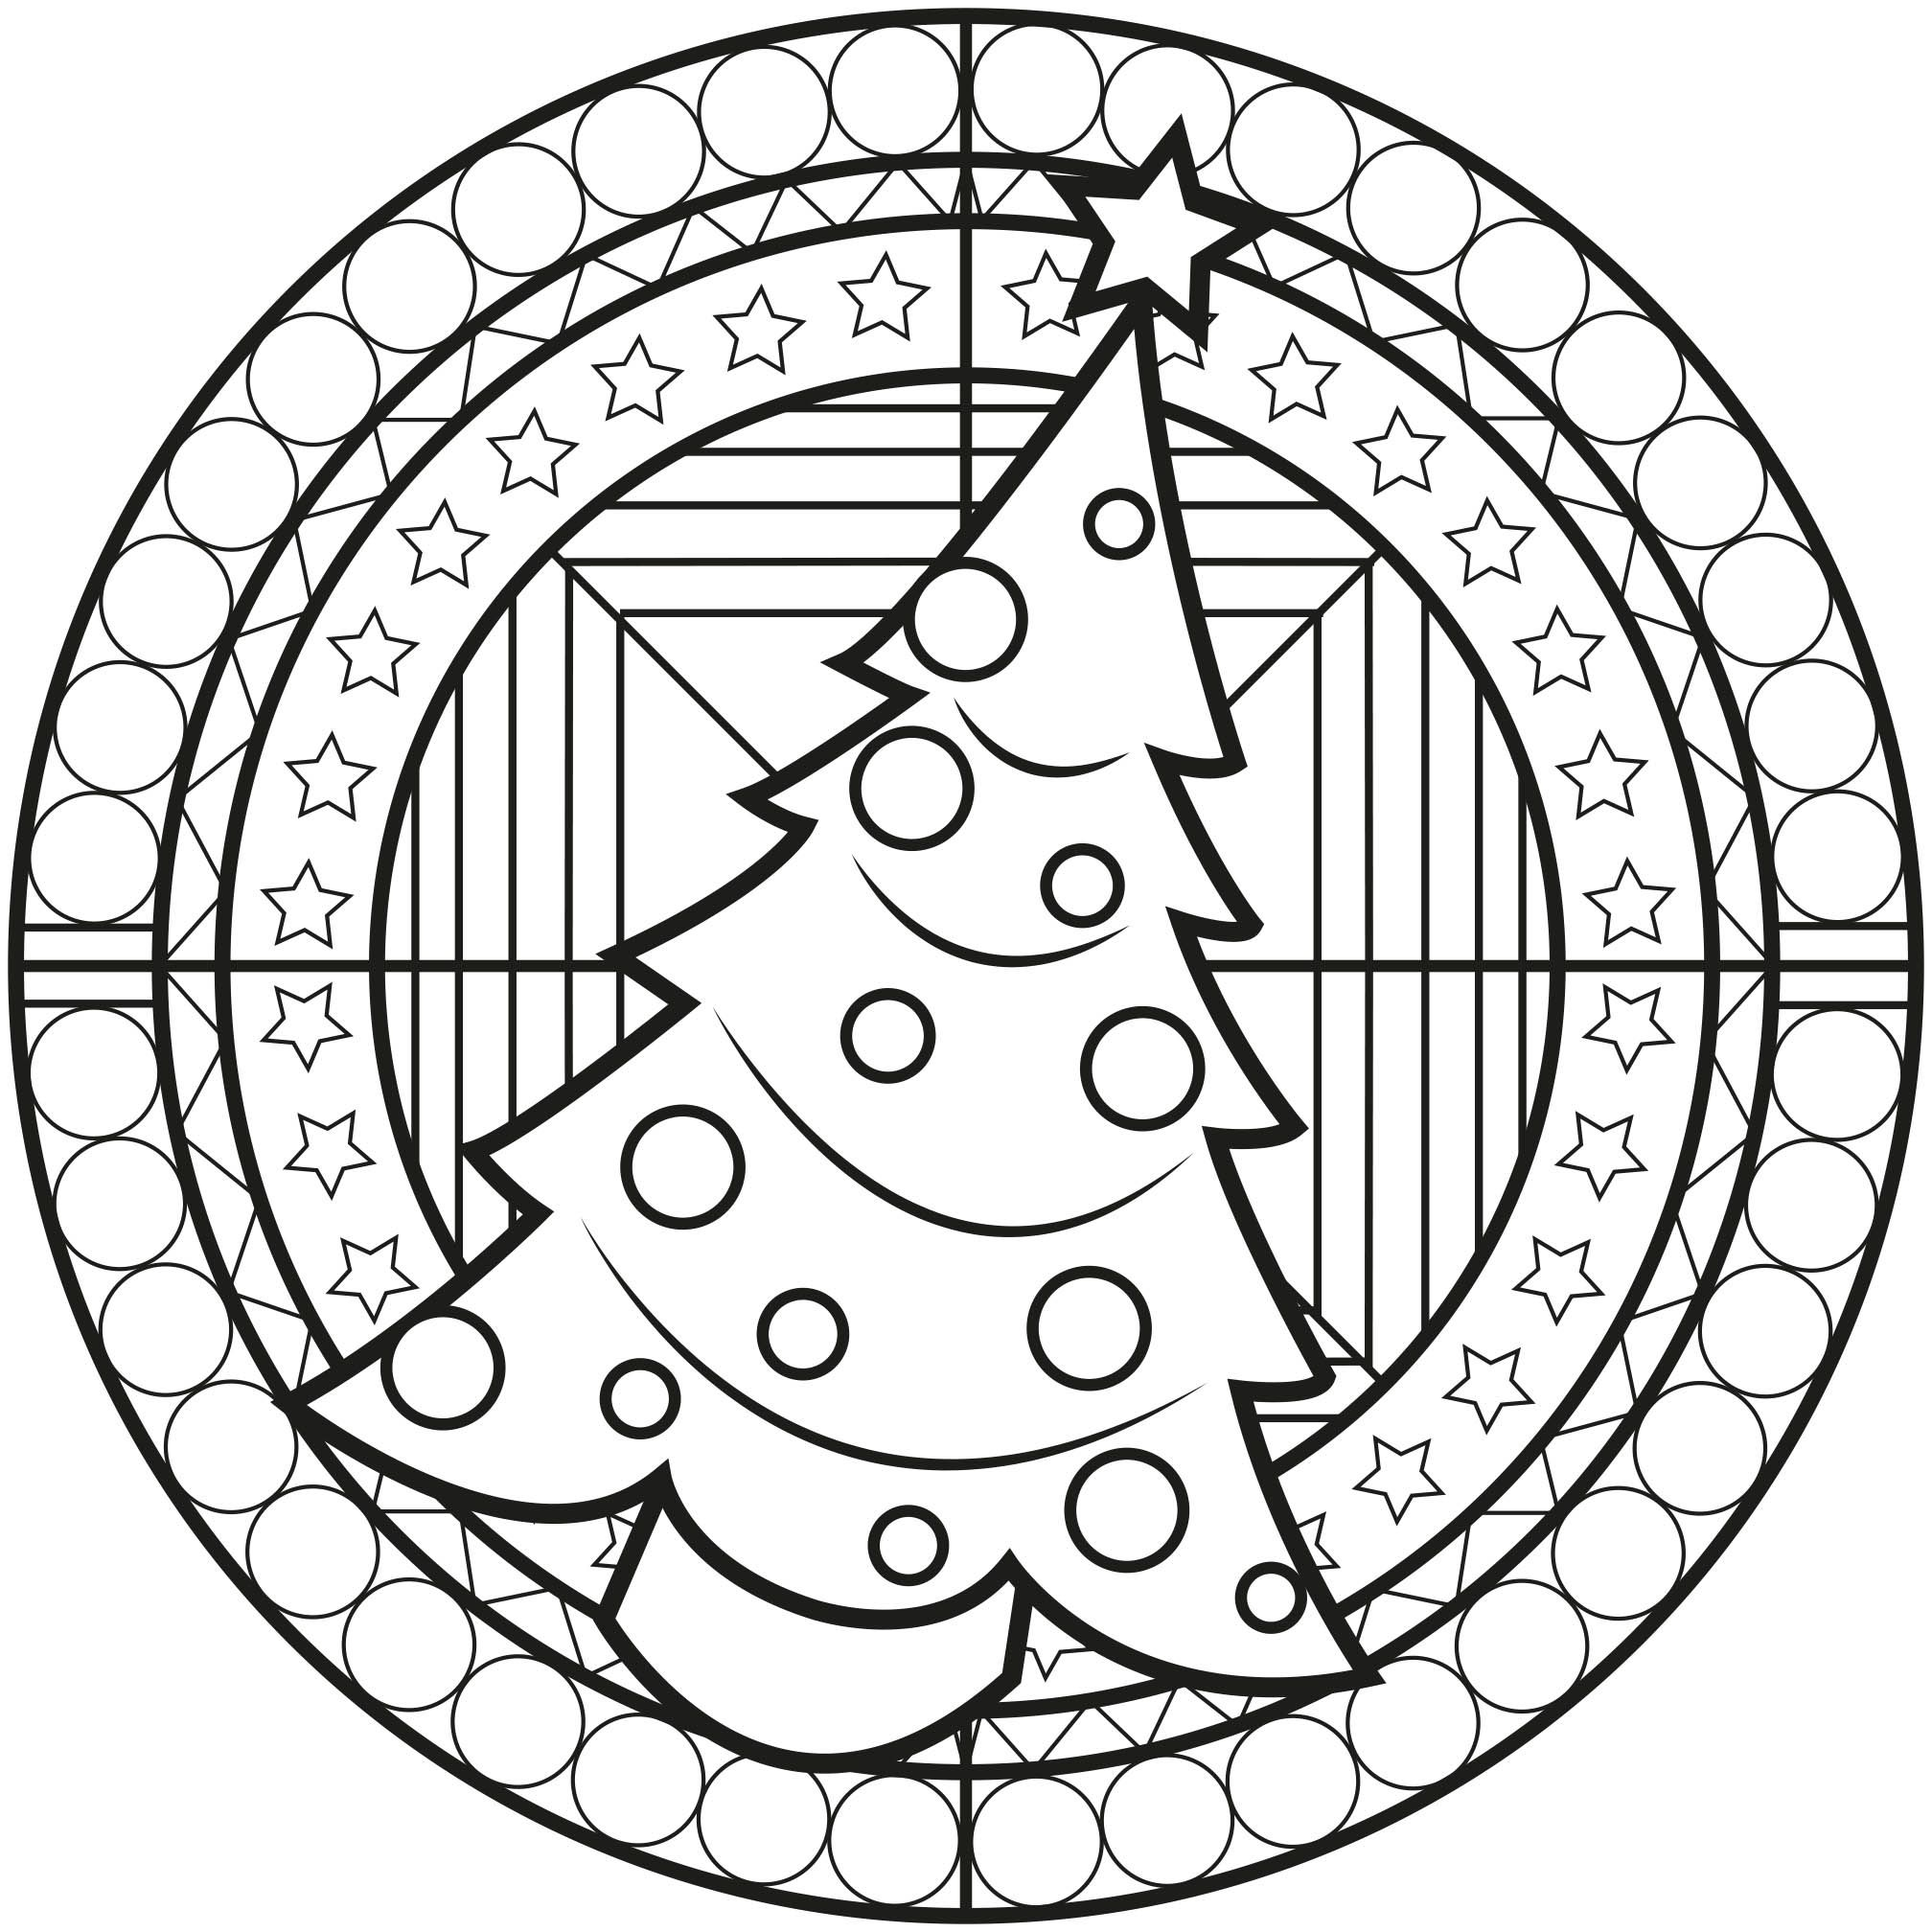 Christmas Is Coming Get In The Ambiance With This Christmas Mandala From The Gallery Man Christmas Coloring Pages Christmas Mandala Mandala Coloring Pages